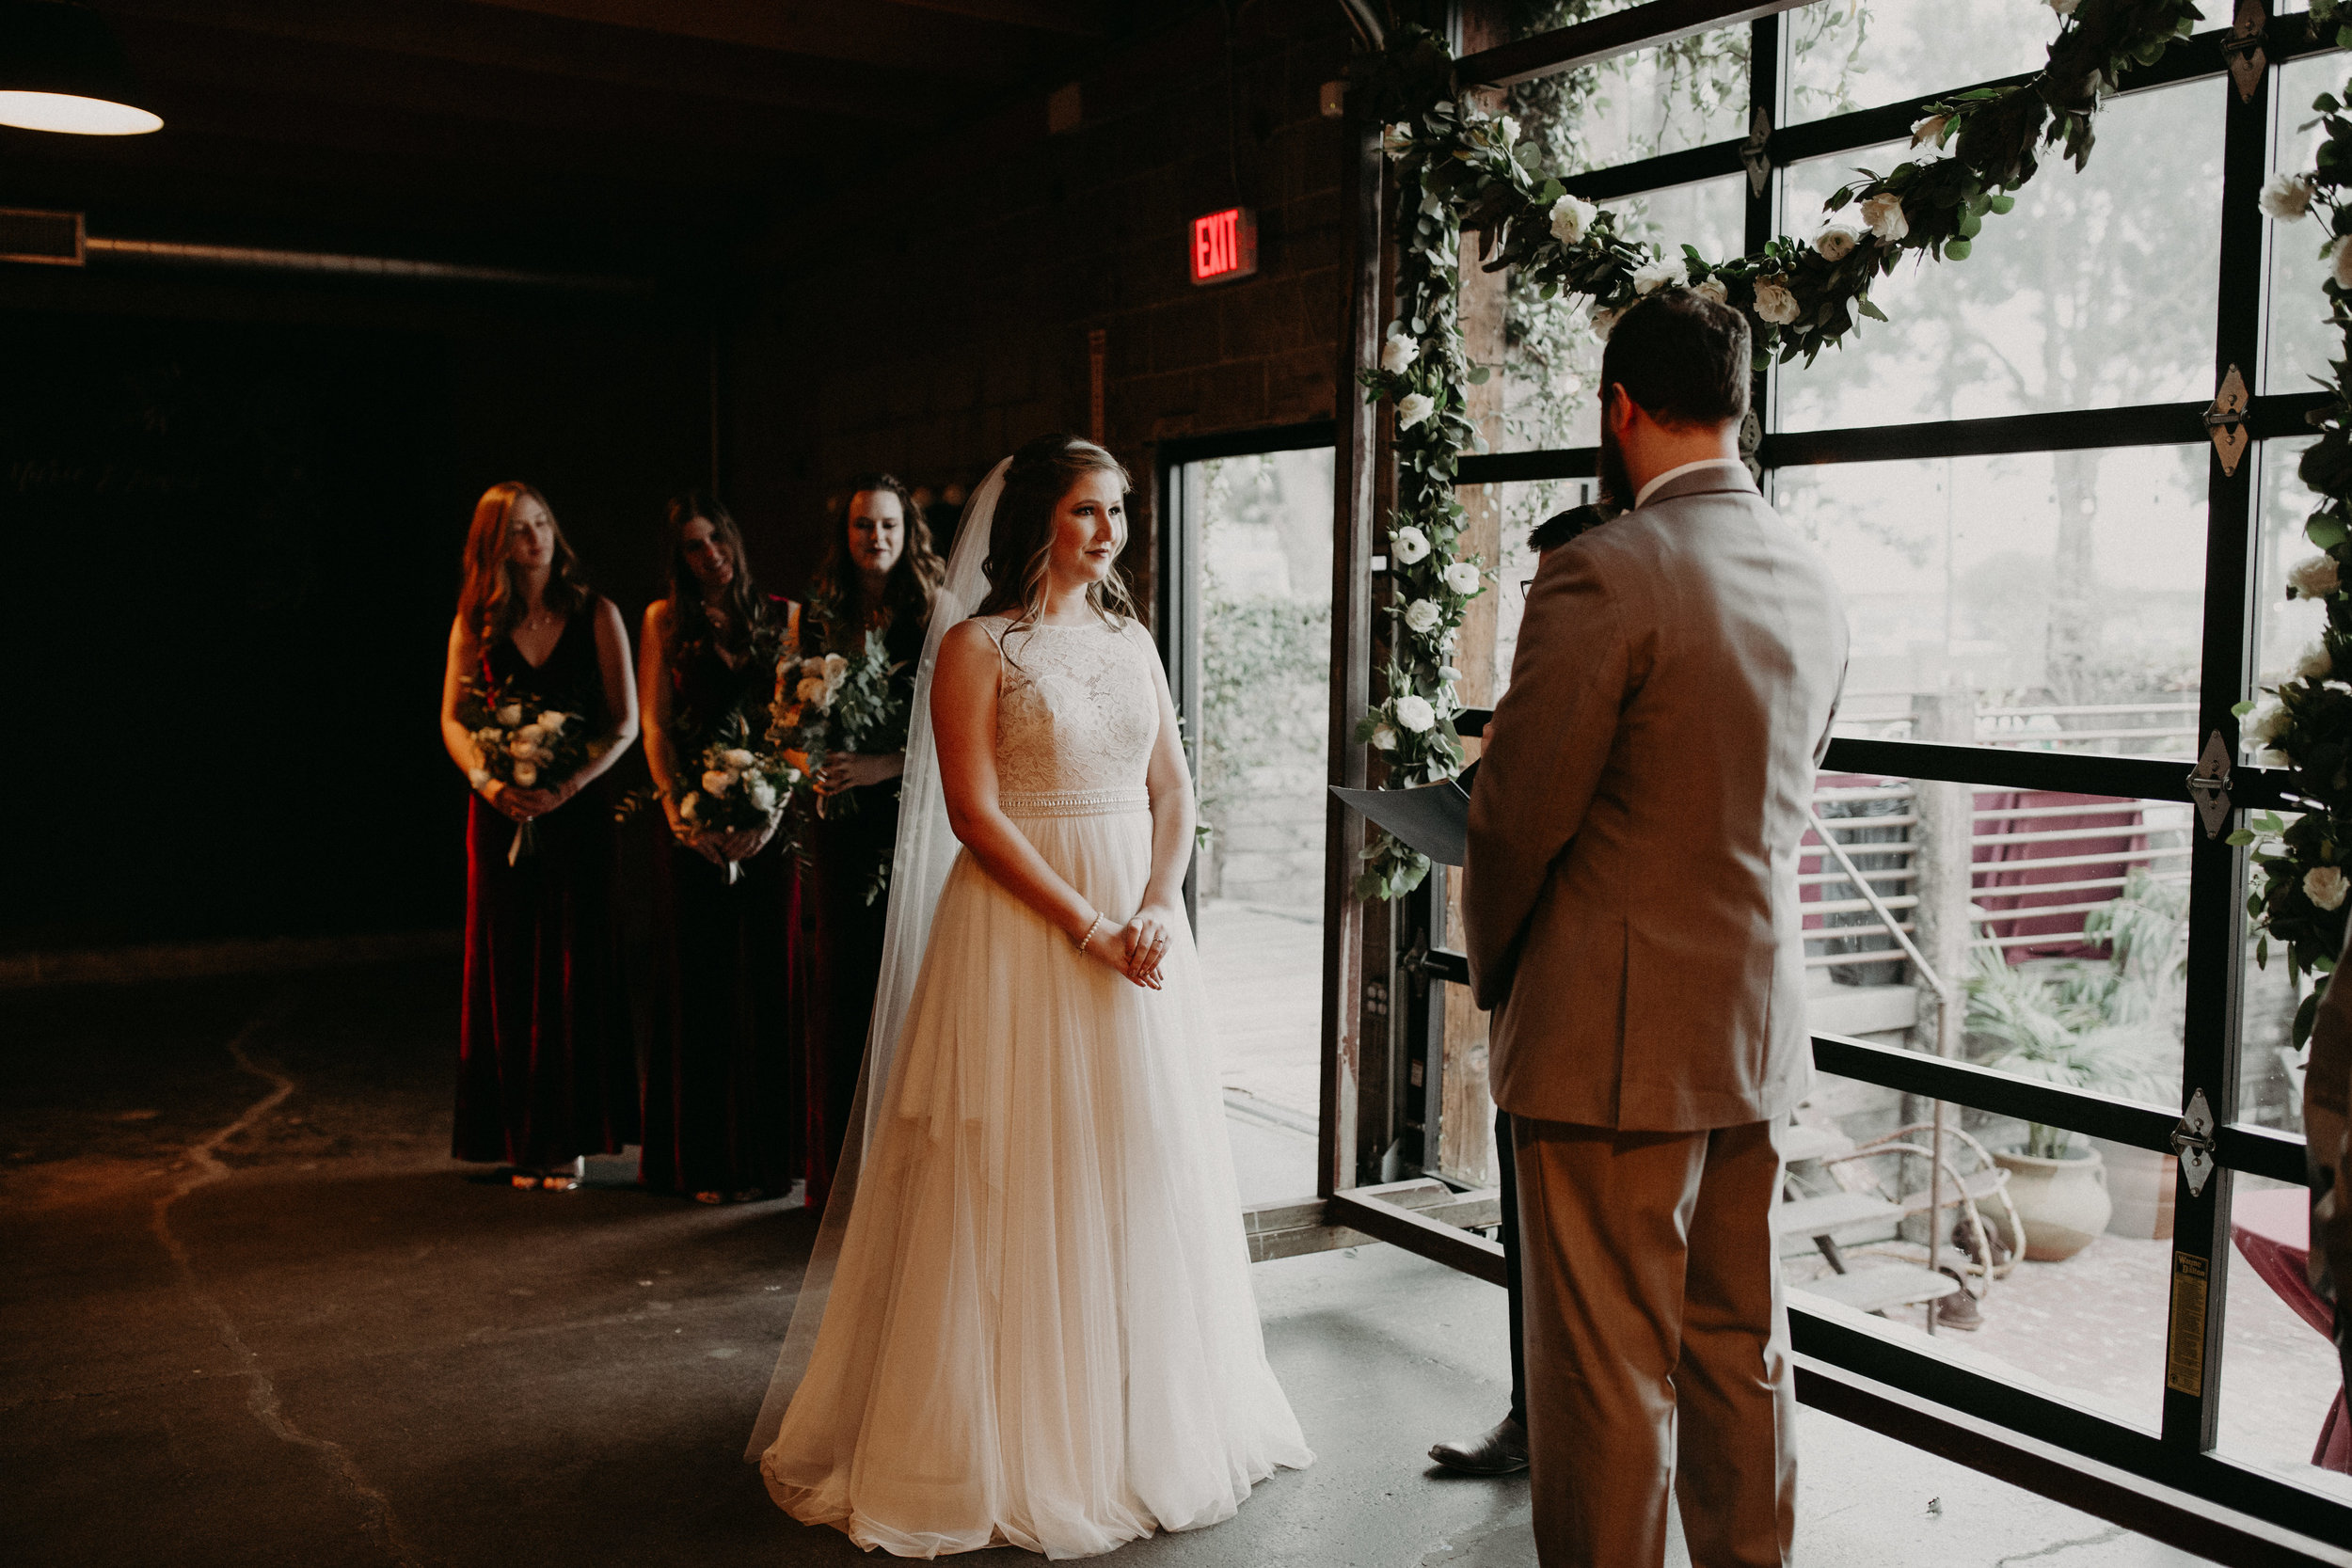 Smoky Hollow Studios Wedding Anne & Lewis Emily Magers Photography-593.jpg